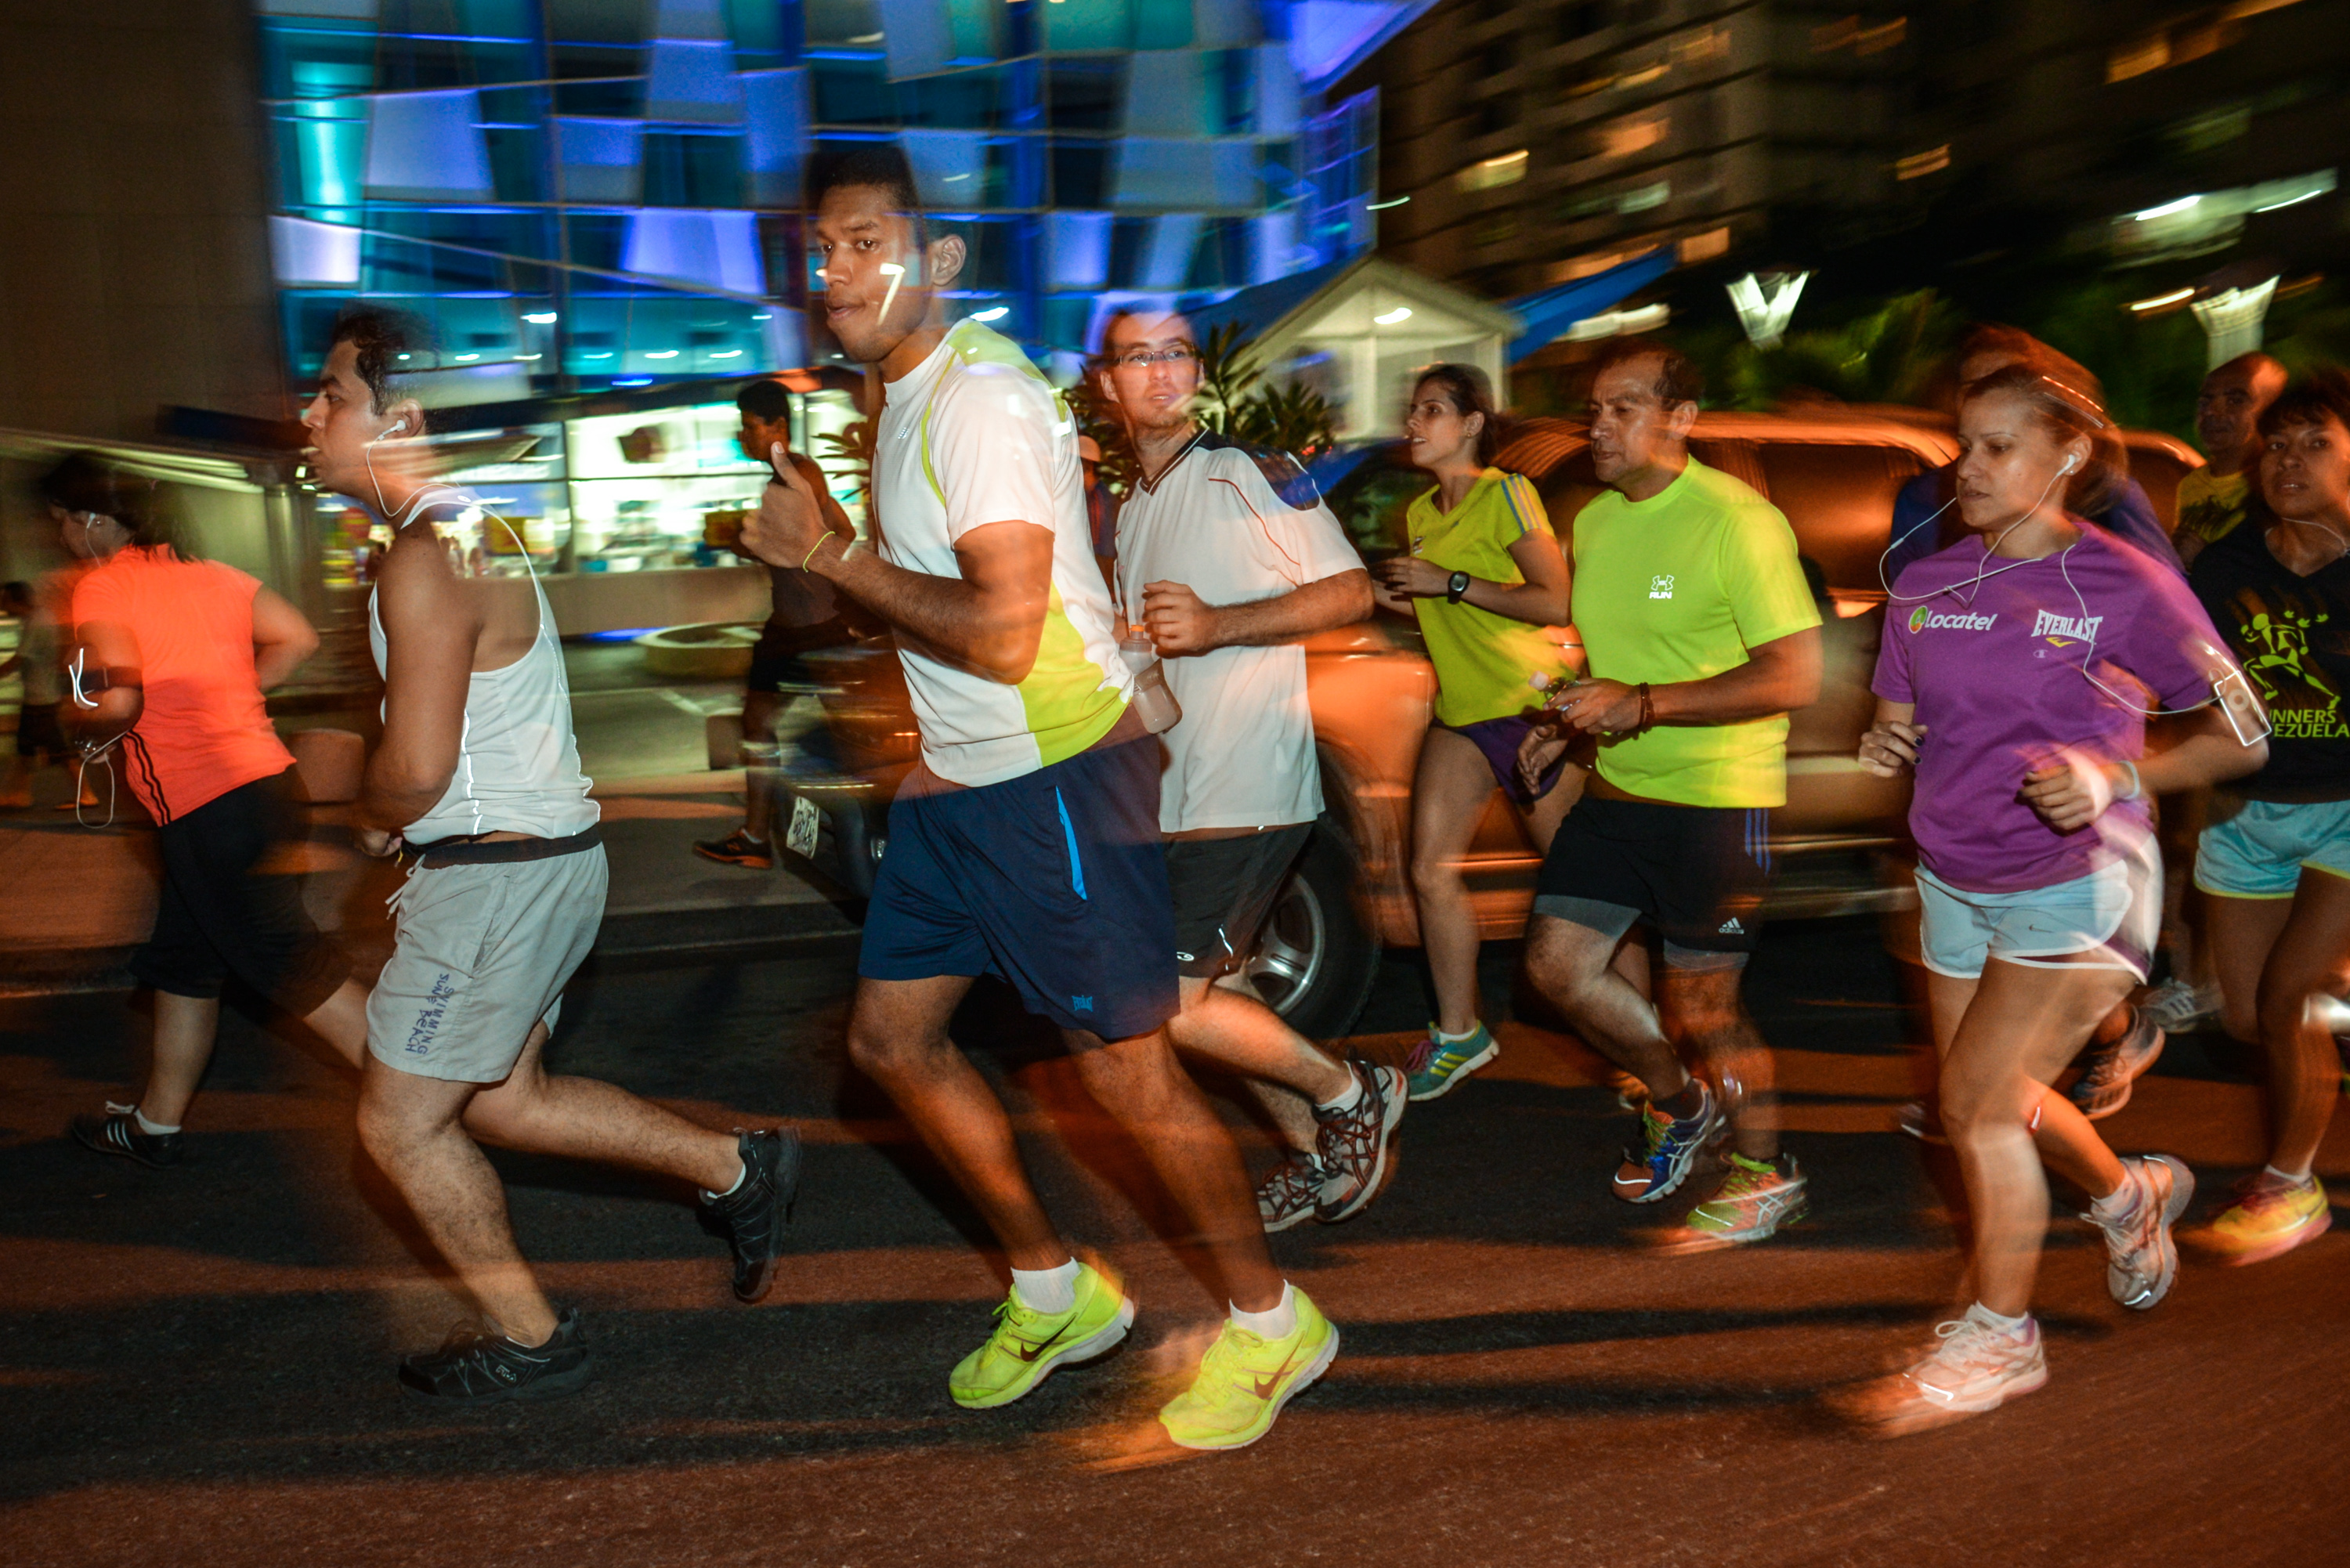 Some 300 people participate in group night runs in Caracas.